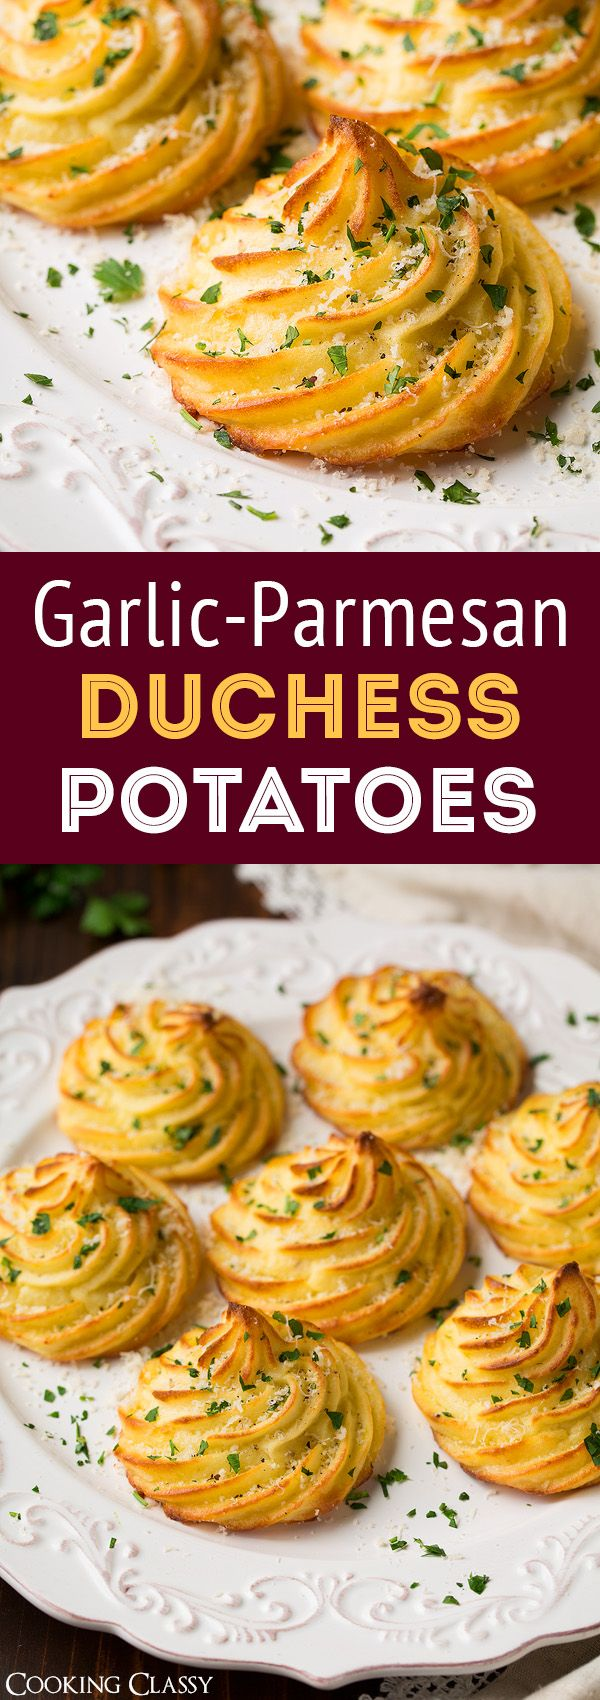 Garlic Parmesan Duchess Potatoes - you NEED these in your life! Little buttery clouds of potato bliss!